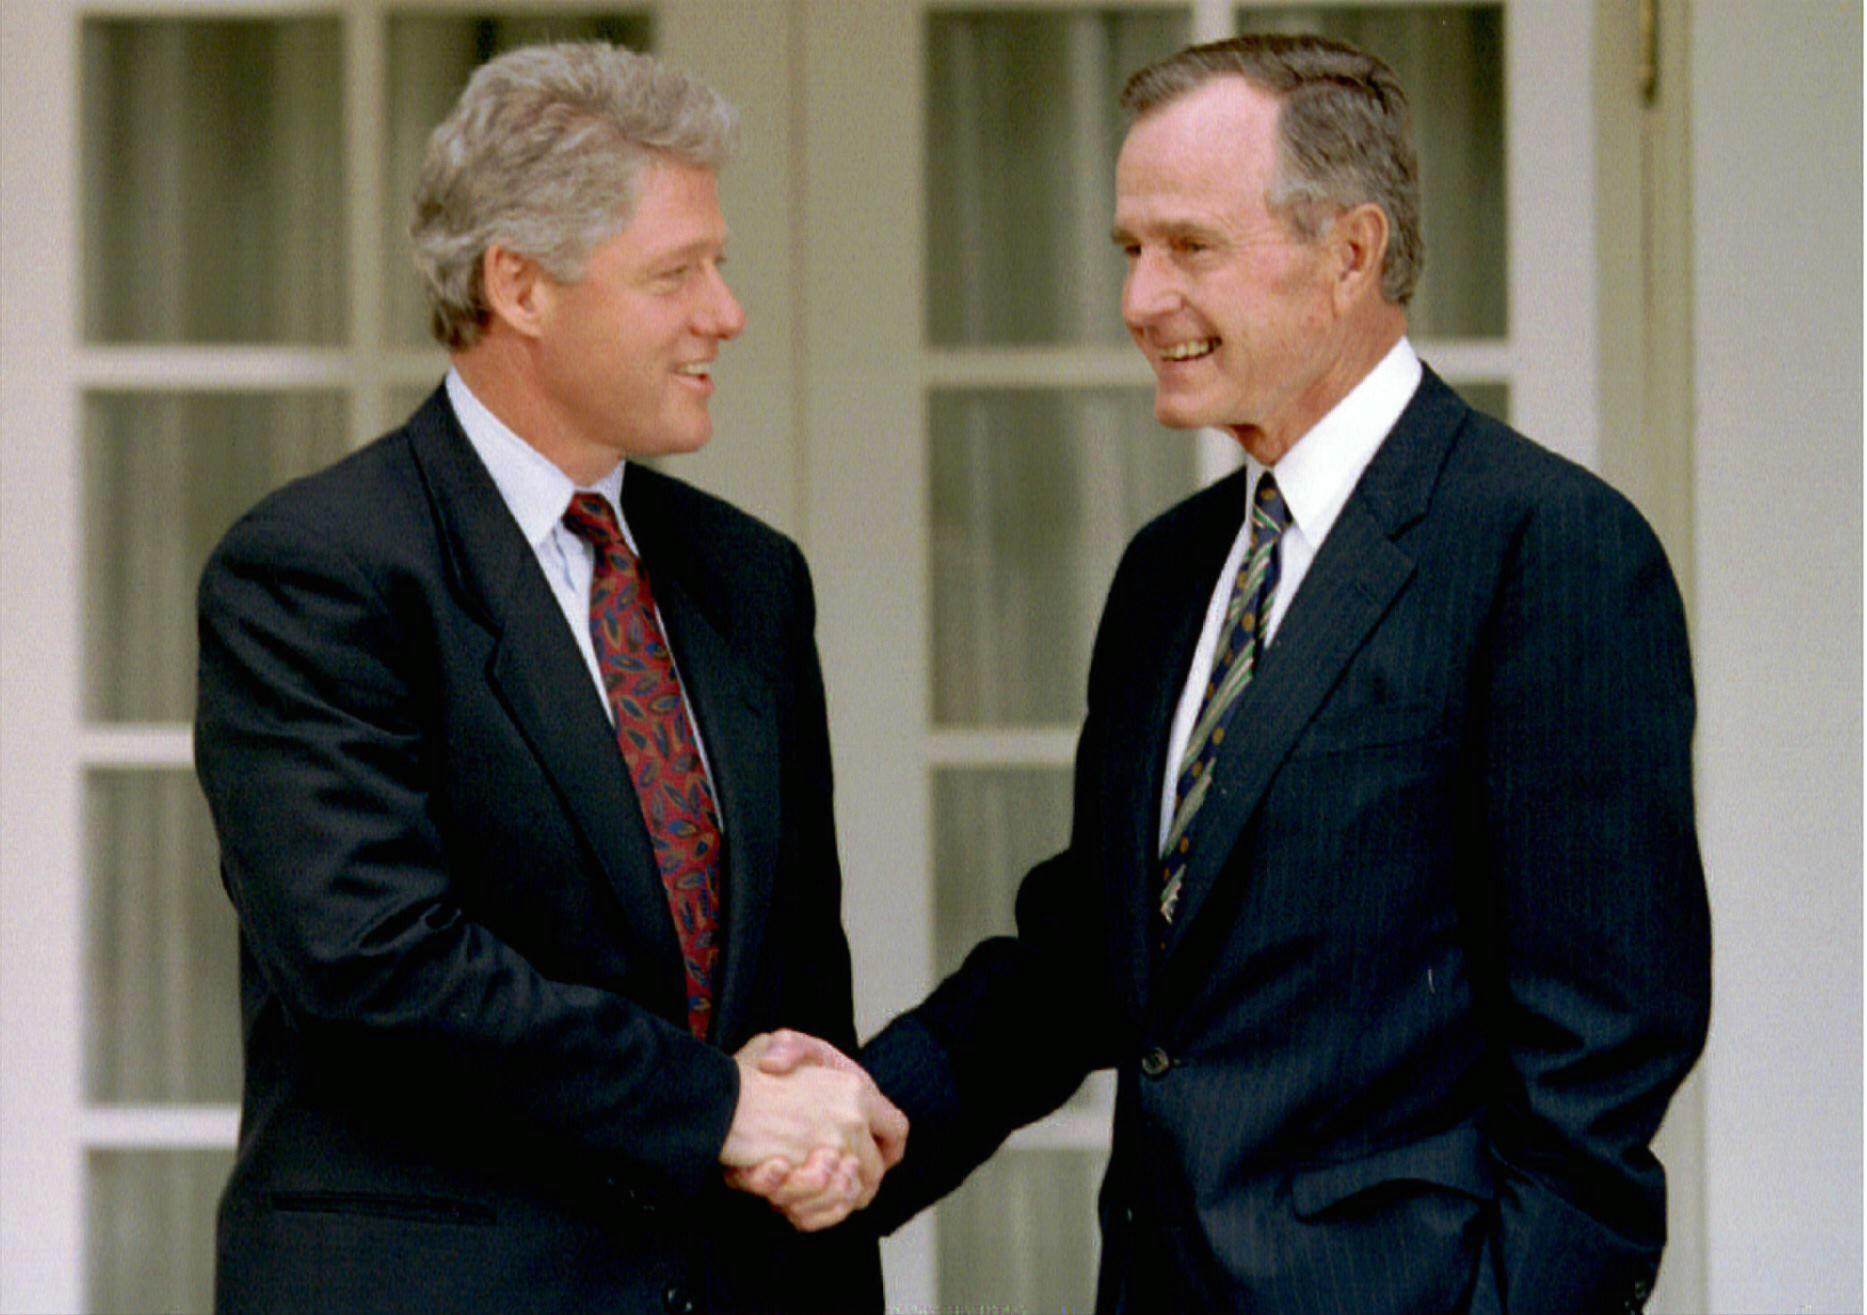 Planning for Presidents - Hosting Former Presidents Bush and Clinton